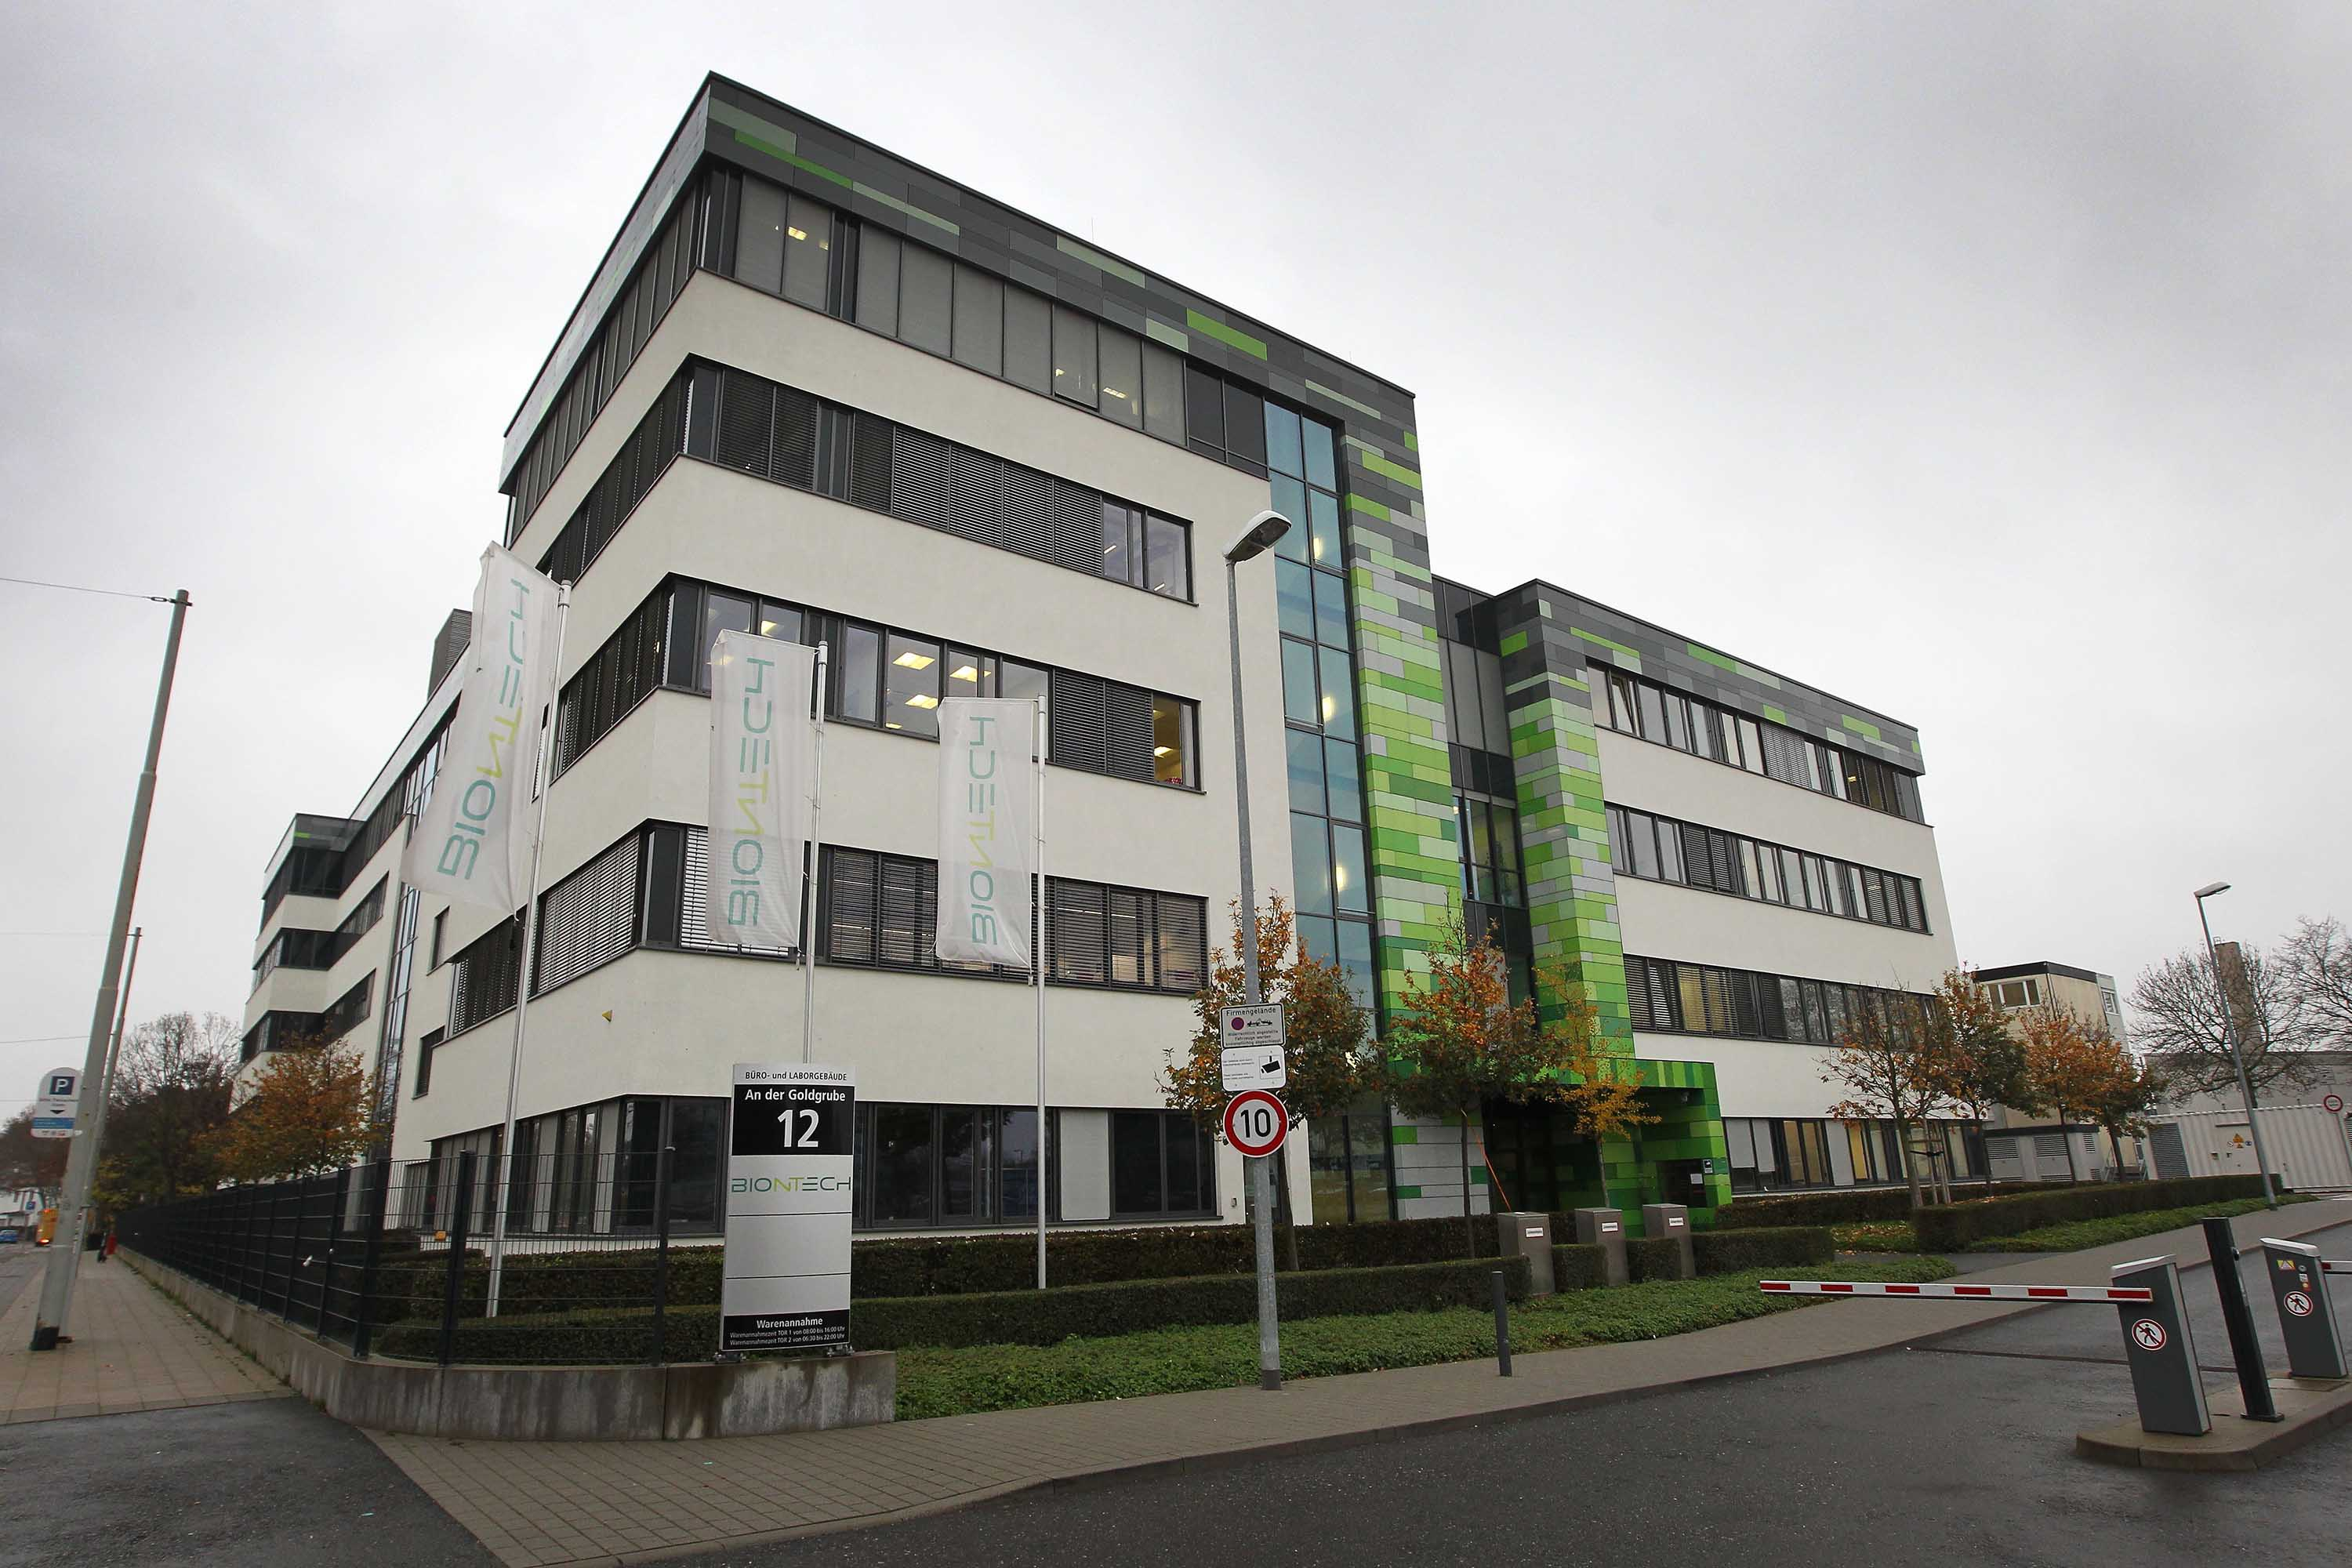 The headquarters of German company BioNtech is pictured in Mainz, Germany, on November 12.